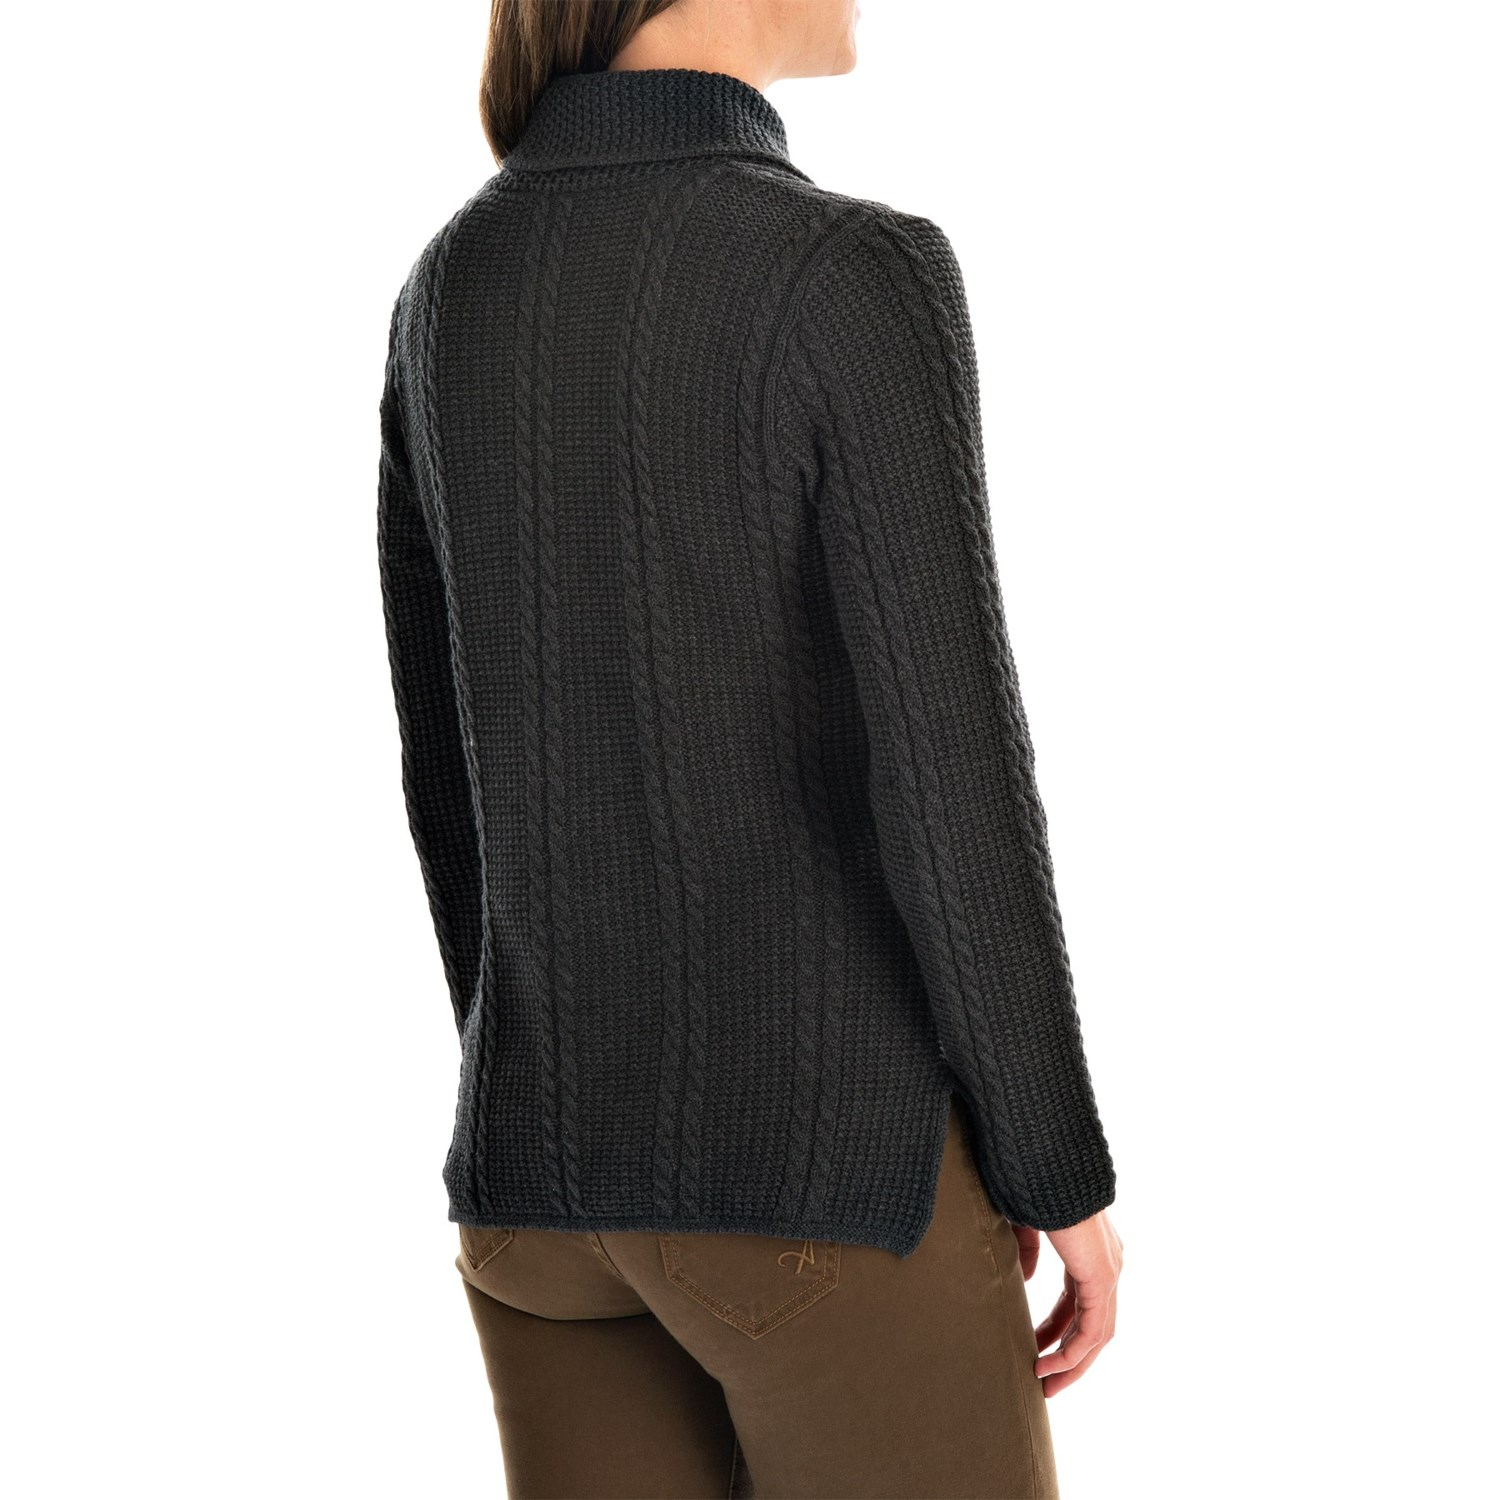 Find a Cable Knit Sweater for Women, a Cable Knit Sweater for Juniors, and a Cable Knit Sweater Outfit at Macy's. Macy's Presents: The Edit- A curated mix of fashion and inspiration Check It Out. Free Shipping with $49 purchase + Free Store Pickup. Contiguous US. Polo Ralph Lauren Cable-Knit Cotton Sweater.